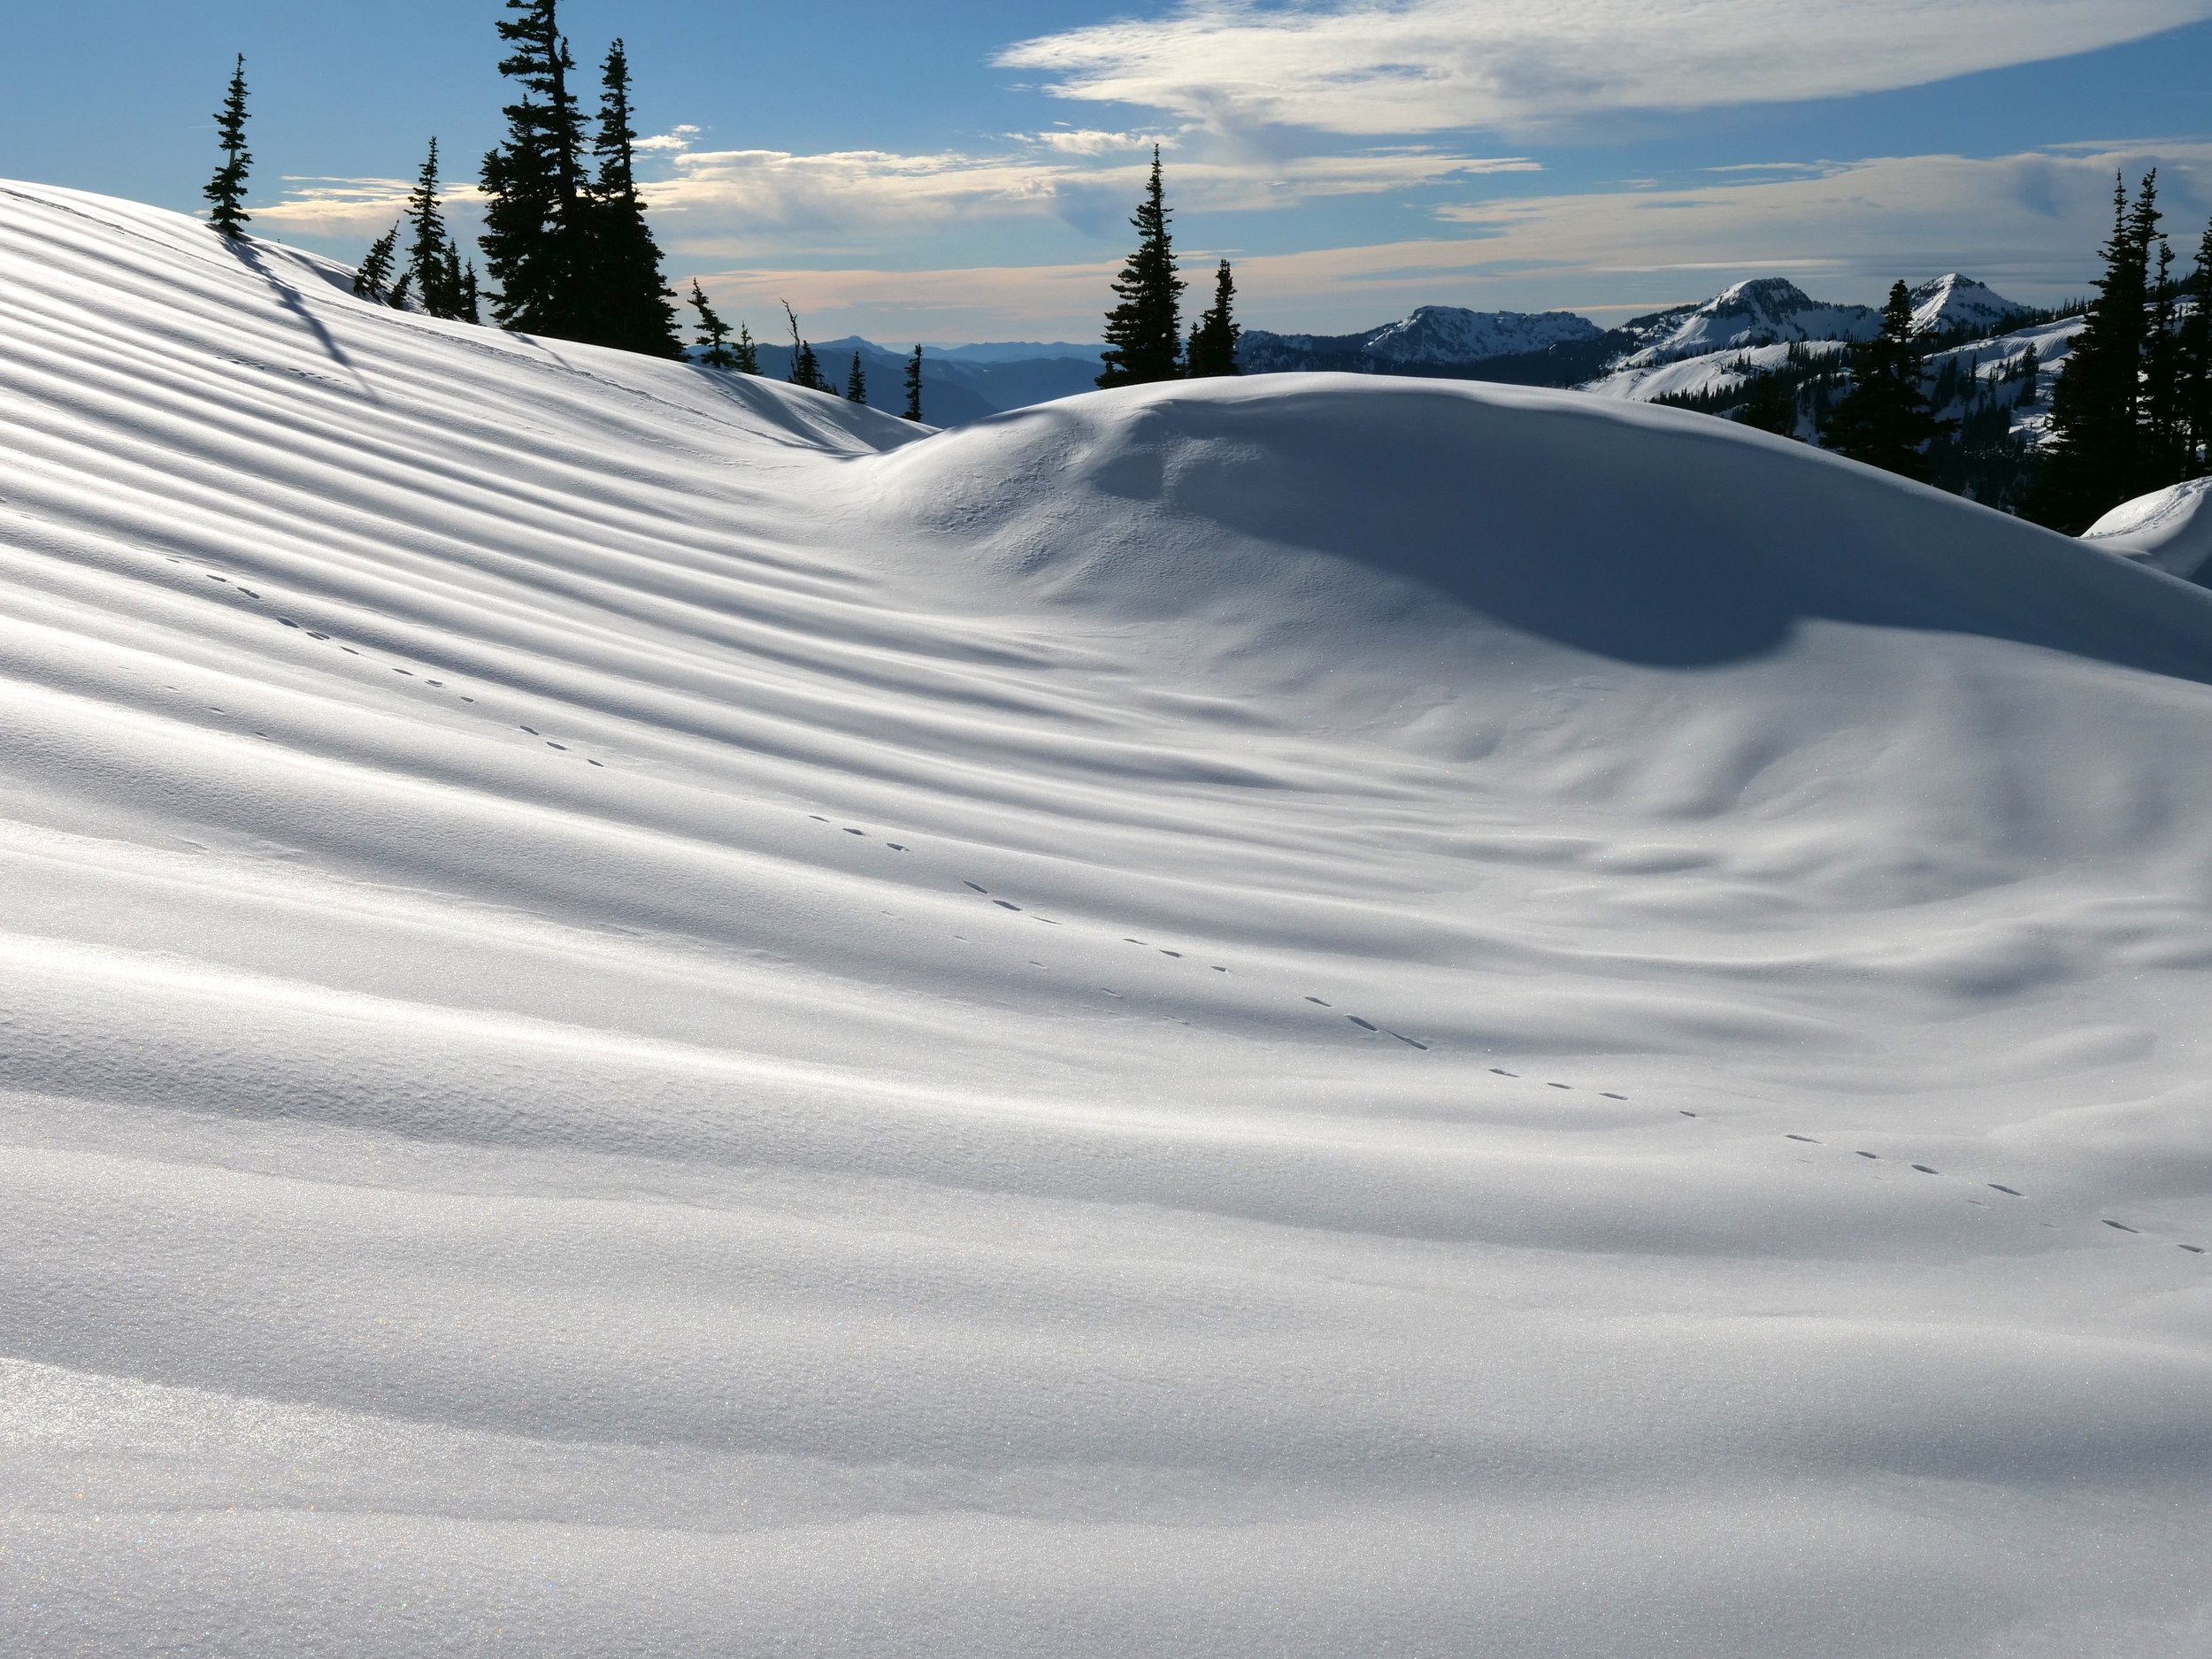 Tracks in the winter playground of Paradise.